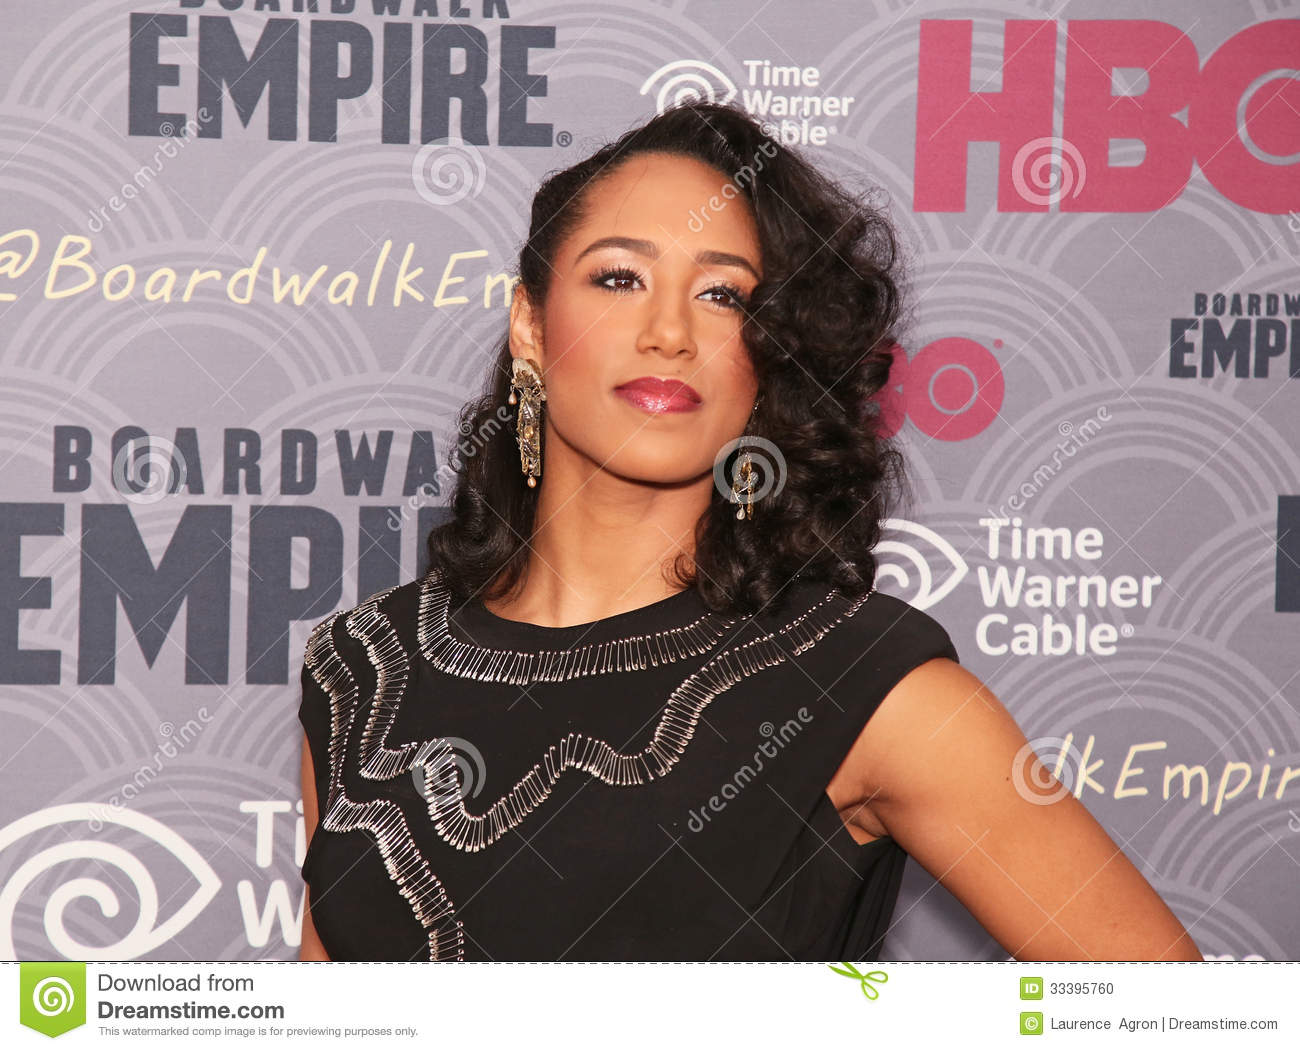 margot bingham agemargot bingham скачать, margot bingham dream a little dream of me lyrics, margot bingham dream a little, margot bingham songs, margot bingham farewell daddy blues, margot bingham, margot bingham age, margot bingham wiki, margot bingham instagram, margot bingham wikipedia, margot bingham boardwalk empire, margot bingham somebody loves me, margot bingham youtube, margot bingham st louis blues, margot bingham the family, margot bingham bio, margot bingham feet, margot bingham parents, margot bingham album, margot bingham birthday